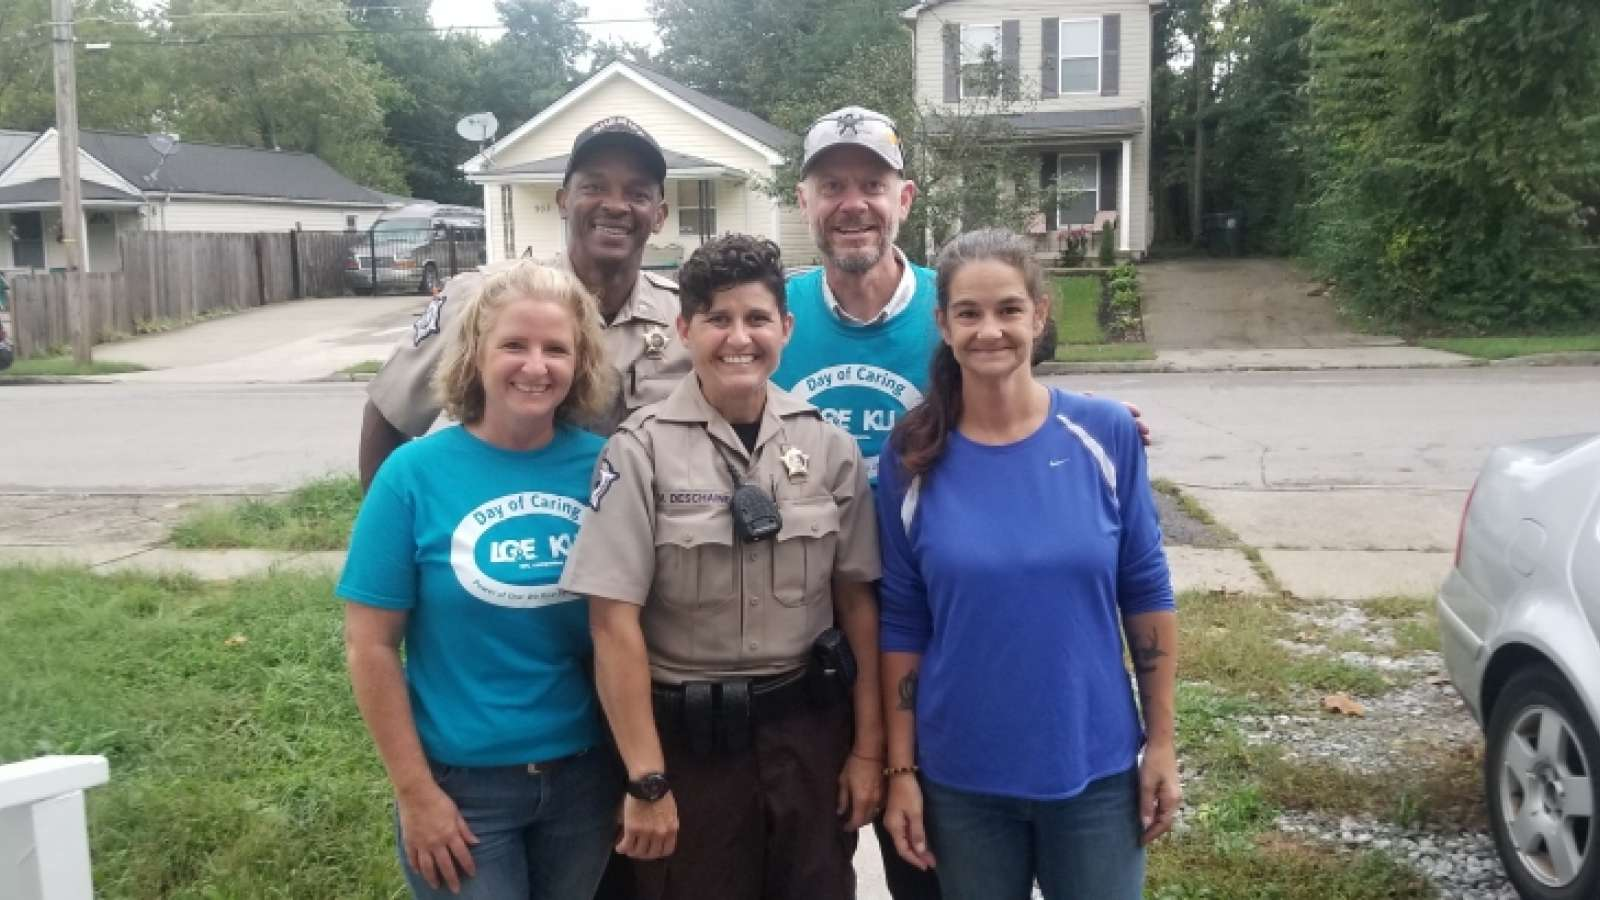 KU employees and sheriff deputy participating in community event